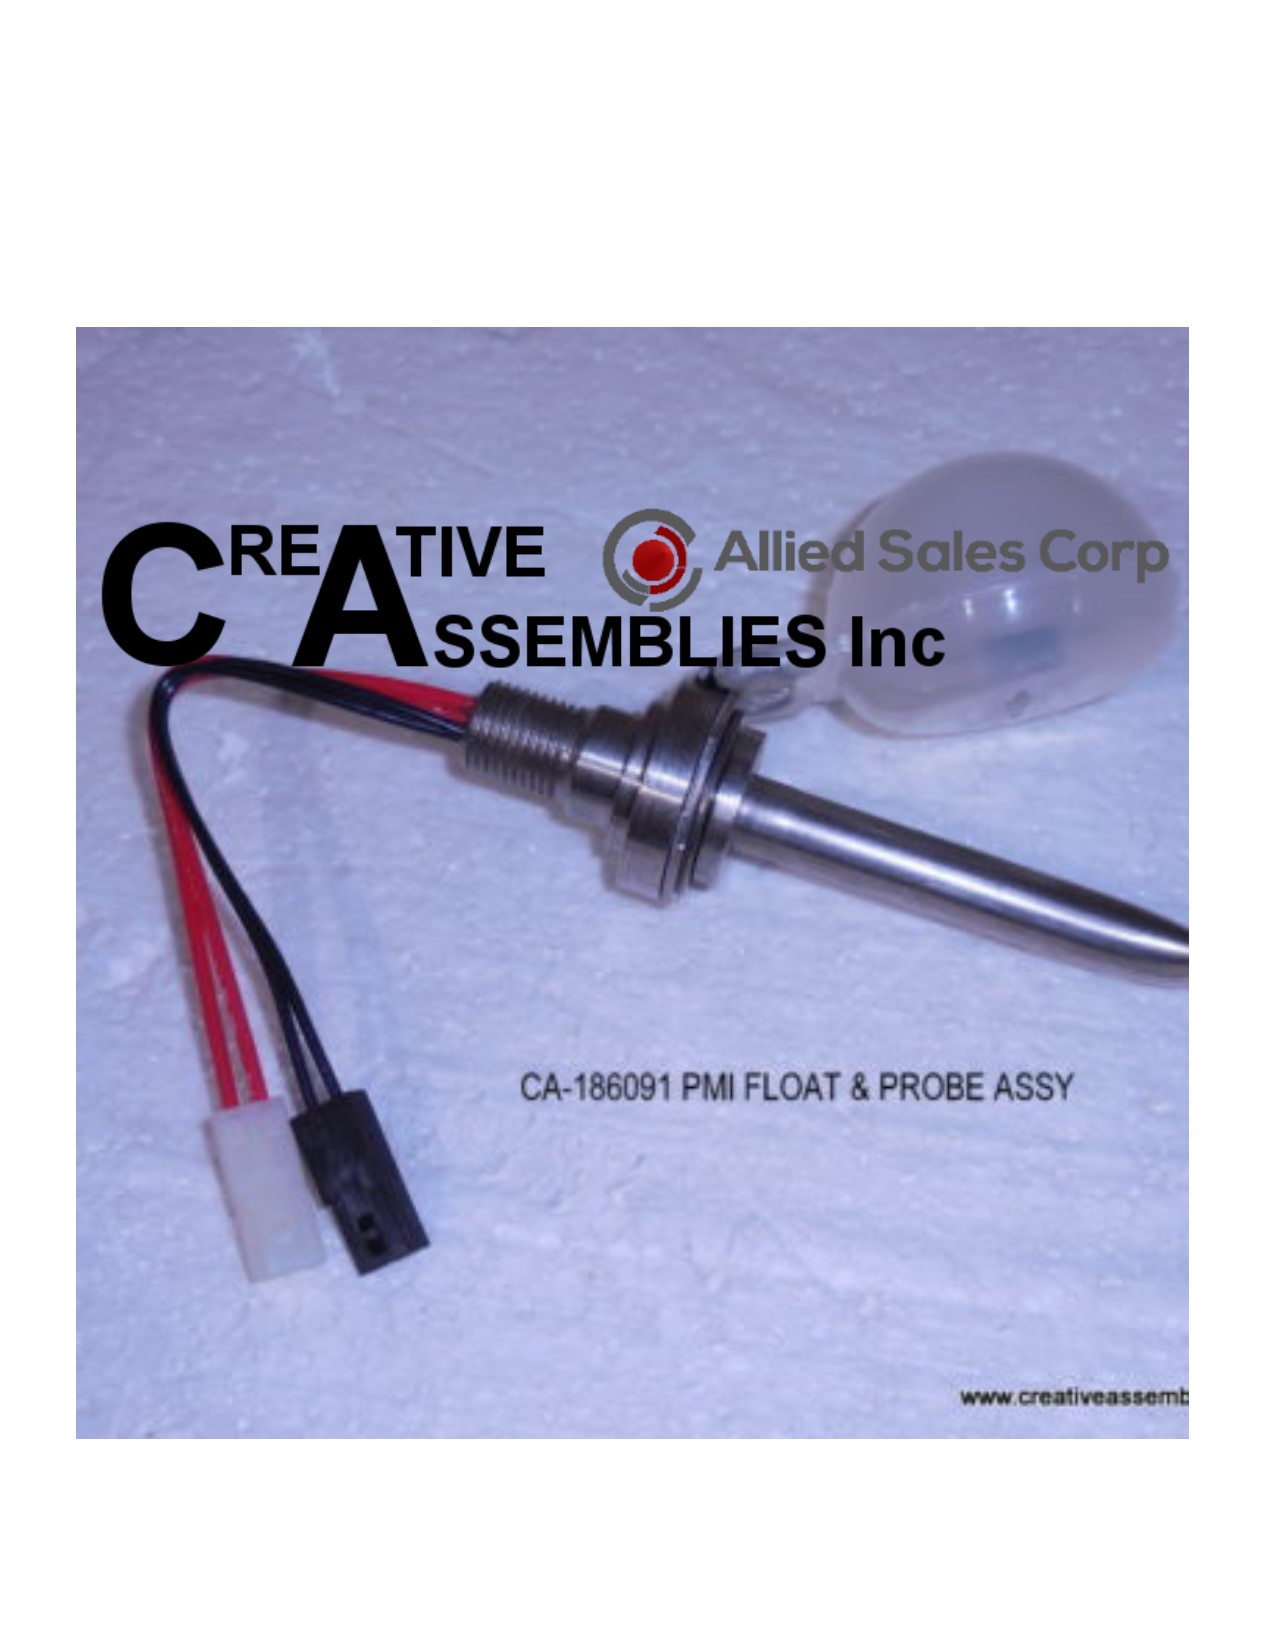 Hobart 186091 Float And Probe Assembly Creative Assemblies Inc Three Phase Wiring Diagram Fryer